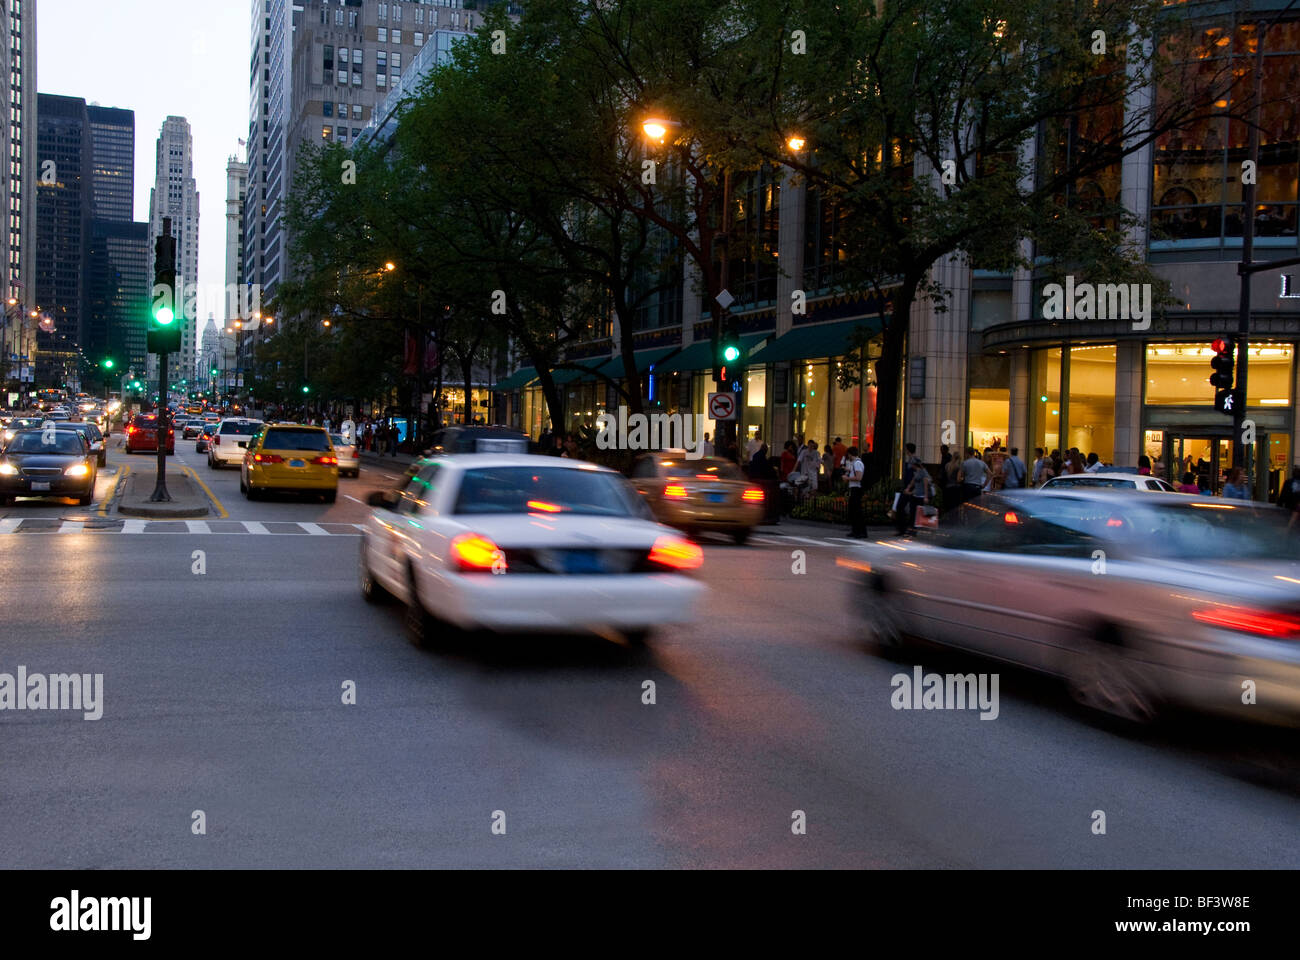 Le trafic sur le Magnificent Mile de Chicago, Illinois, USA Photo Stock